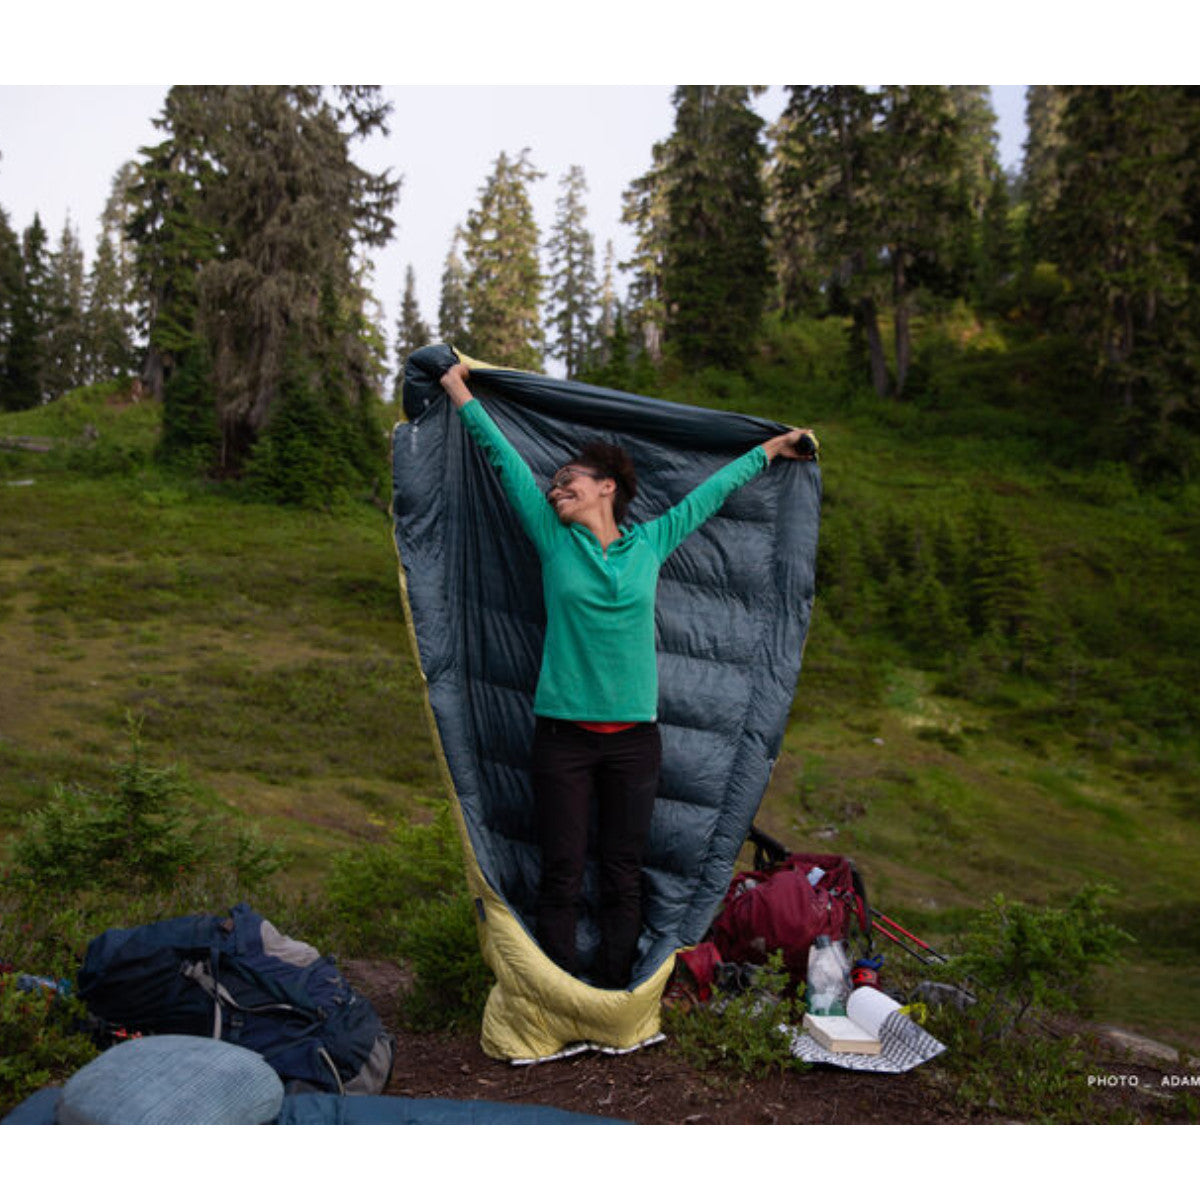 Thermarest Corus 20F/-6C Quilt in golden colour showing person holding it in air